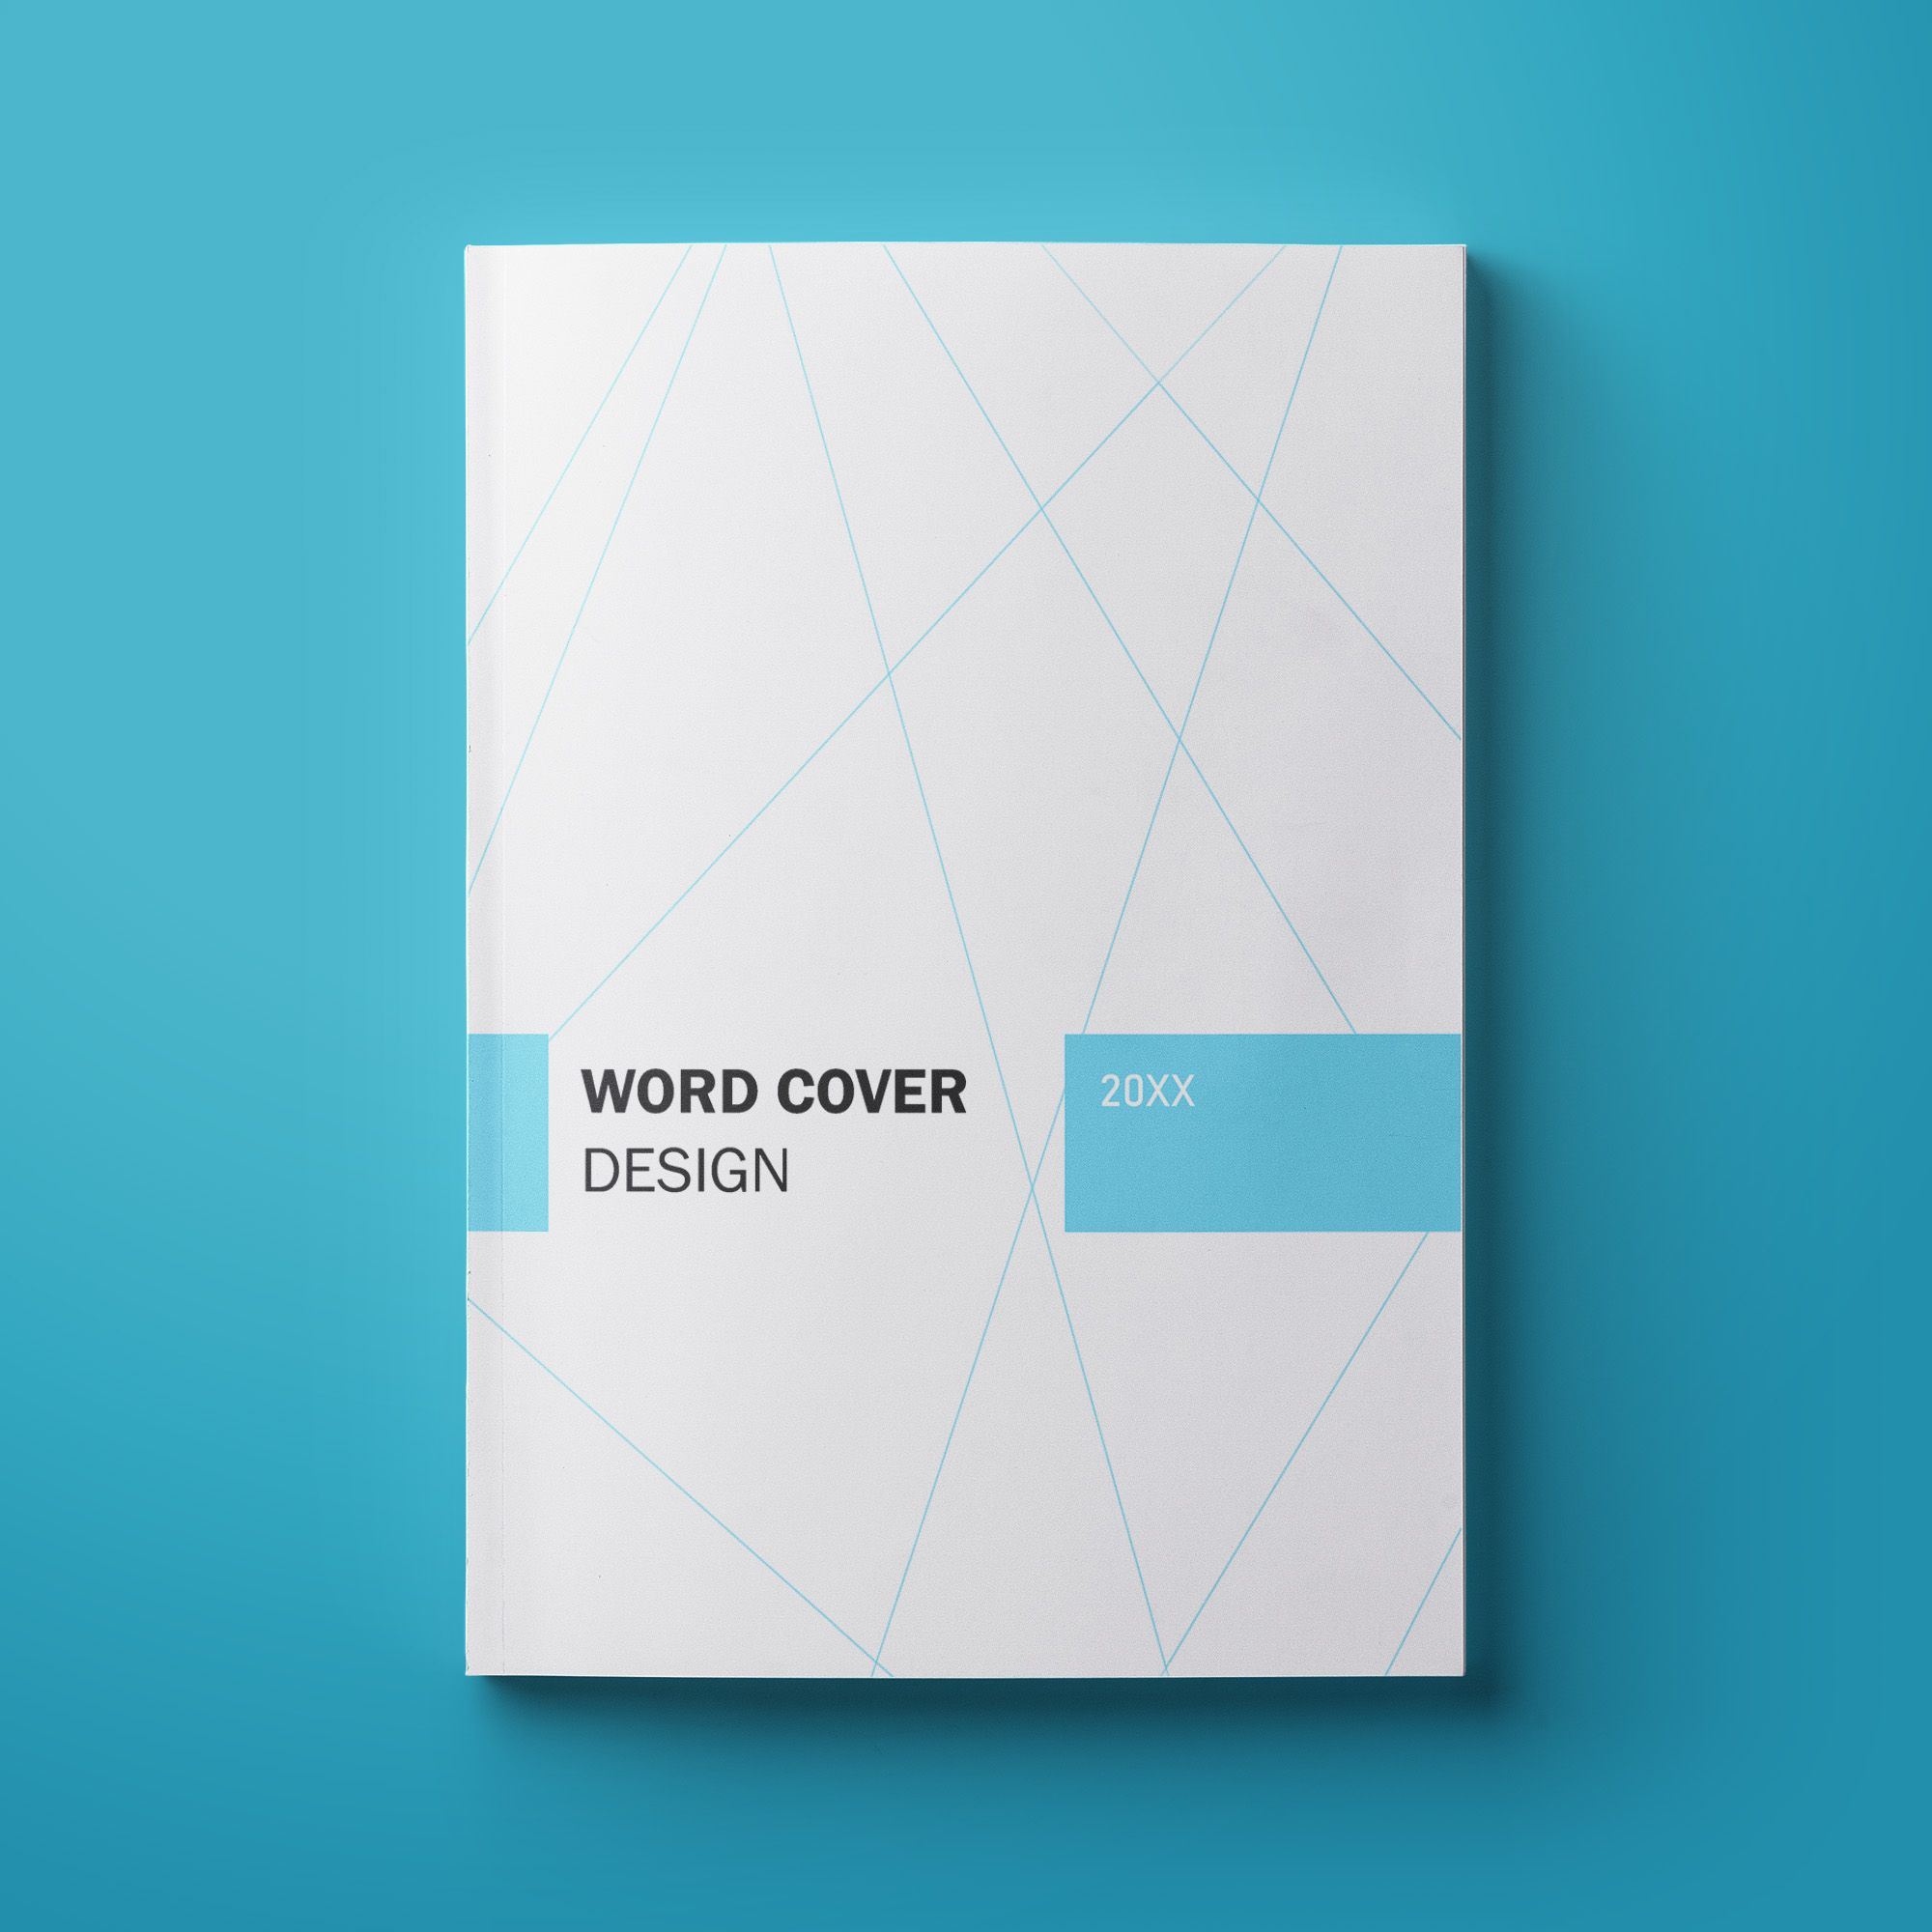 Microsoft Word Cover Templates 34 Free Download In 2020 Booklet Cover Design Catalog Cover Design Book Cover Design Inspiration